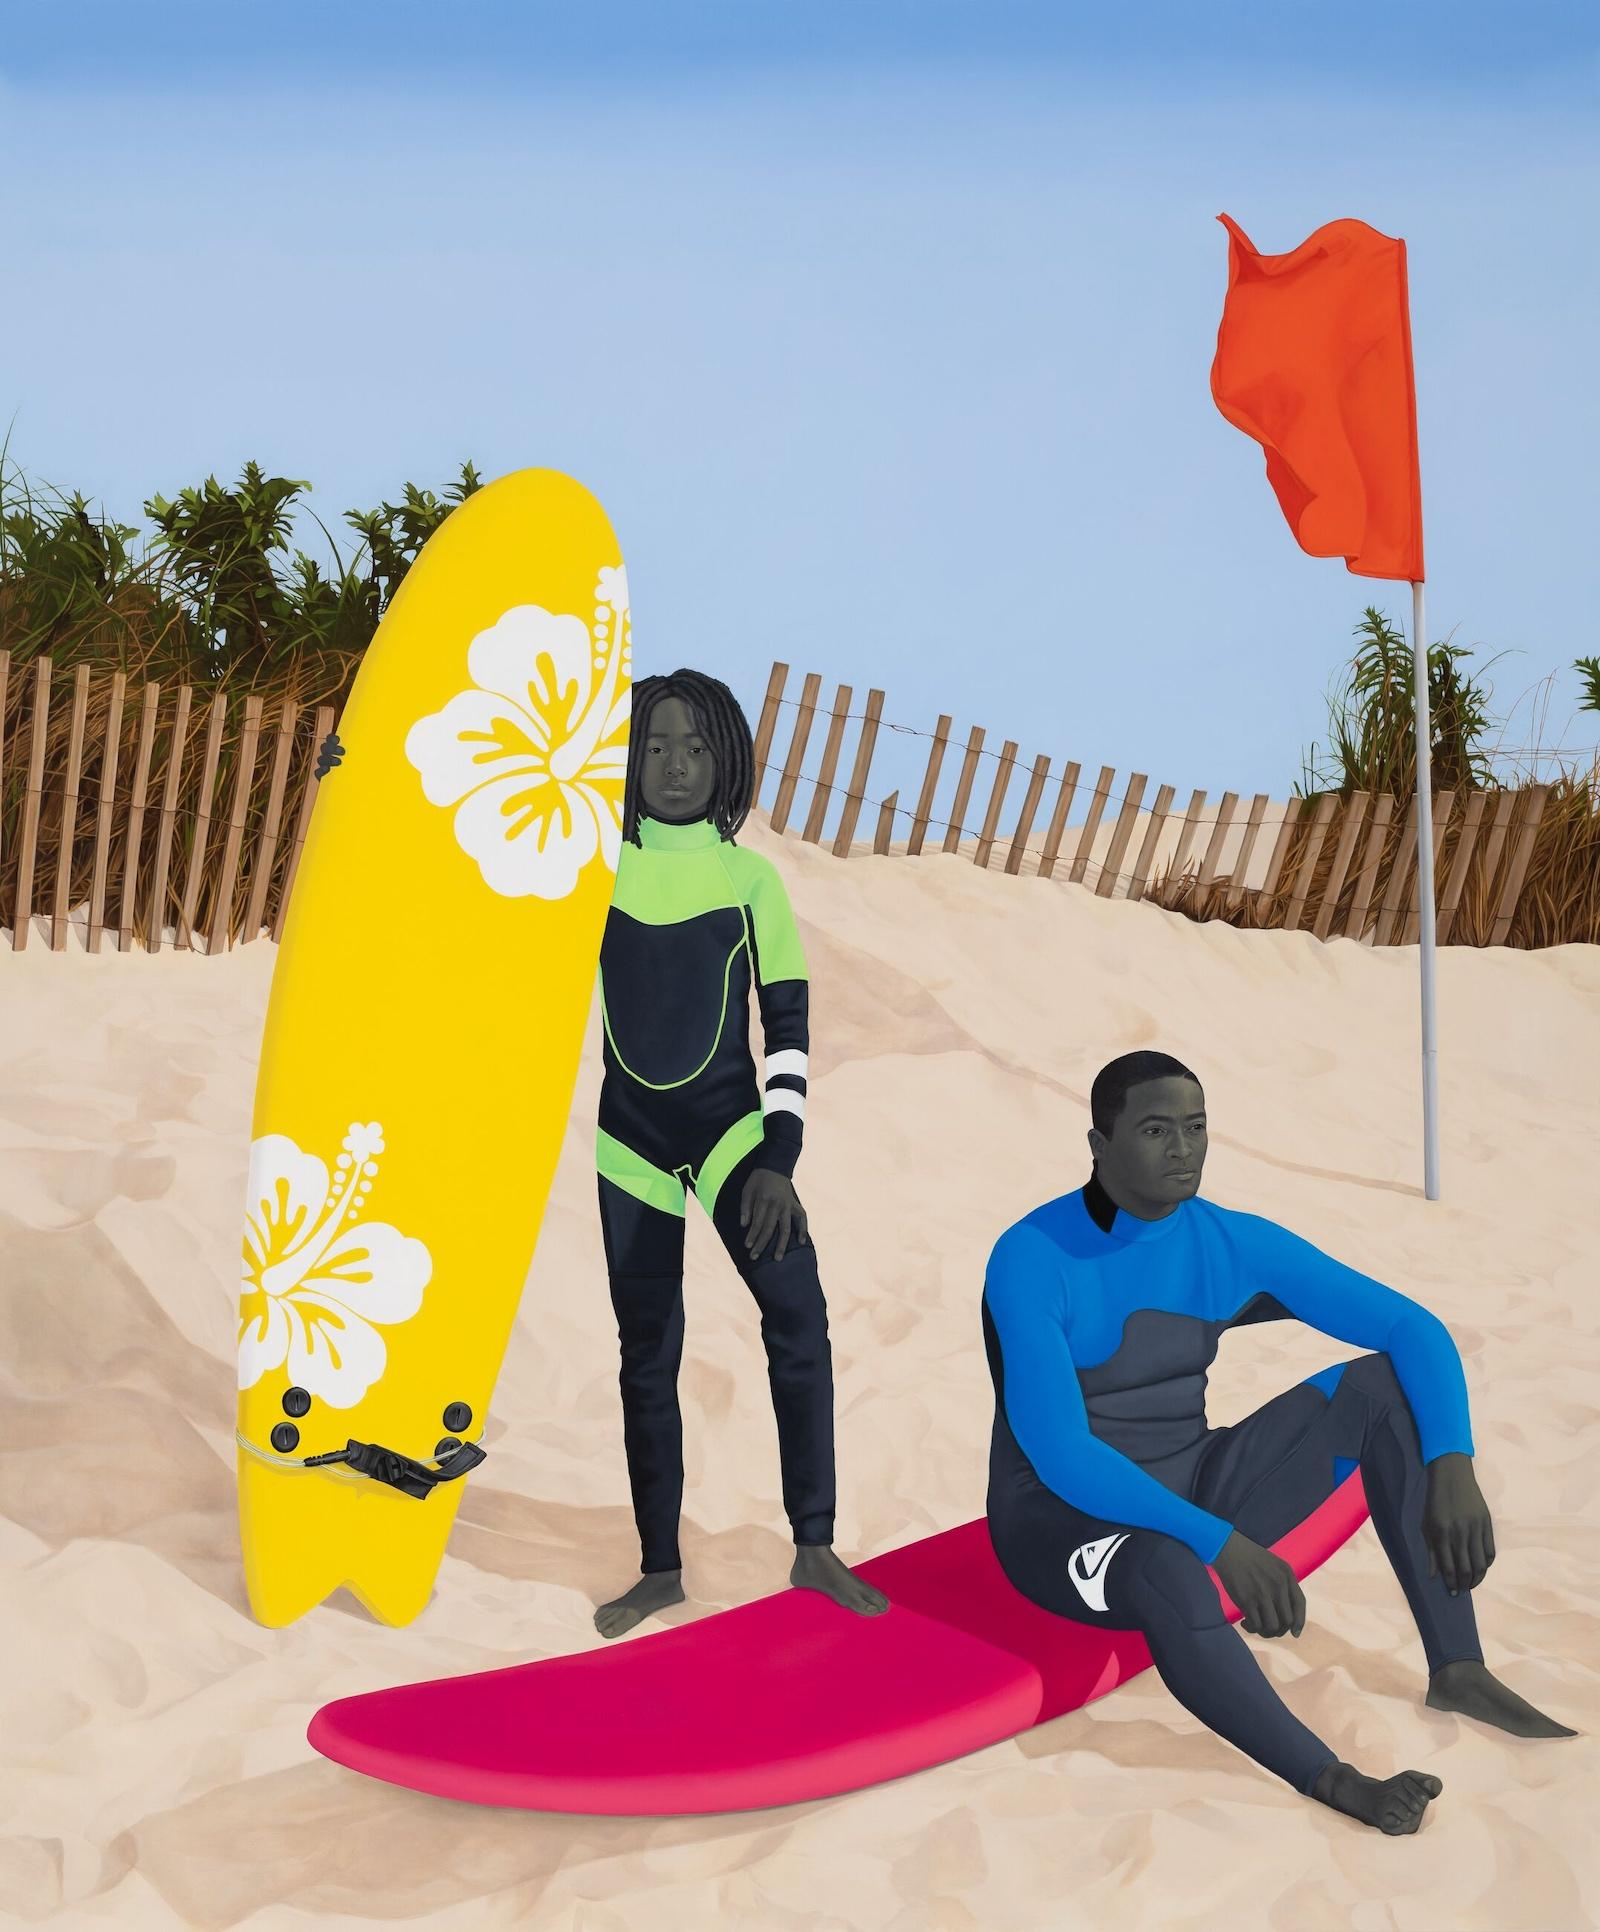 Two surfers pose, one stands with her board, looking at viewer while the other sits on his, looking out at the sea.